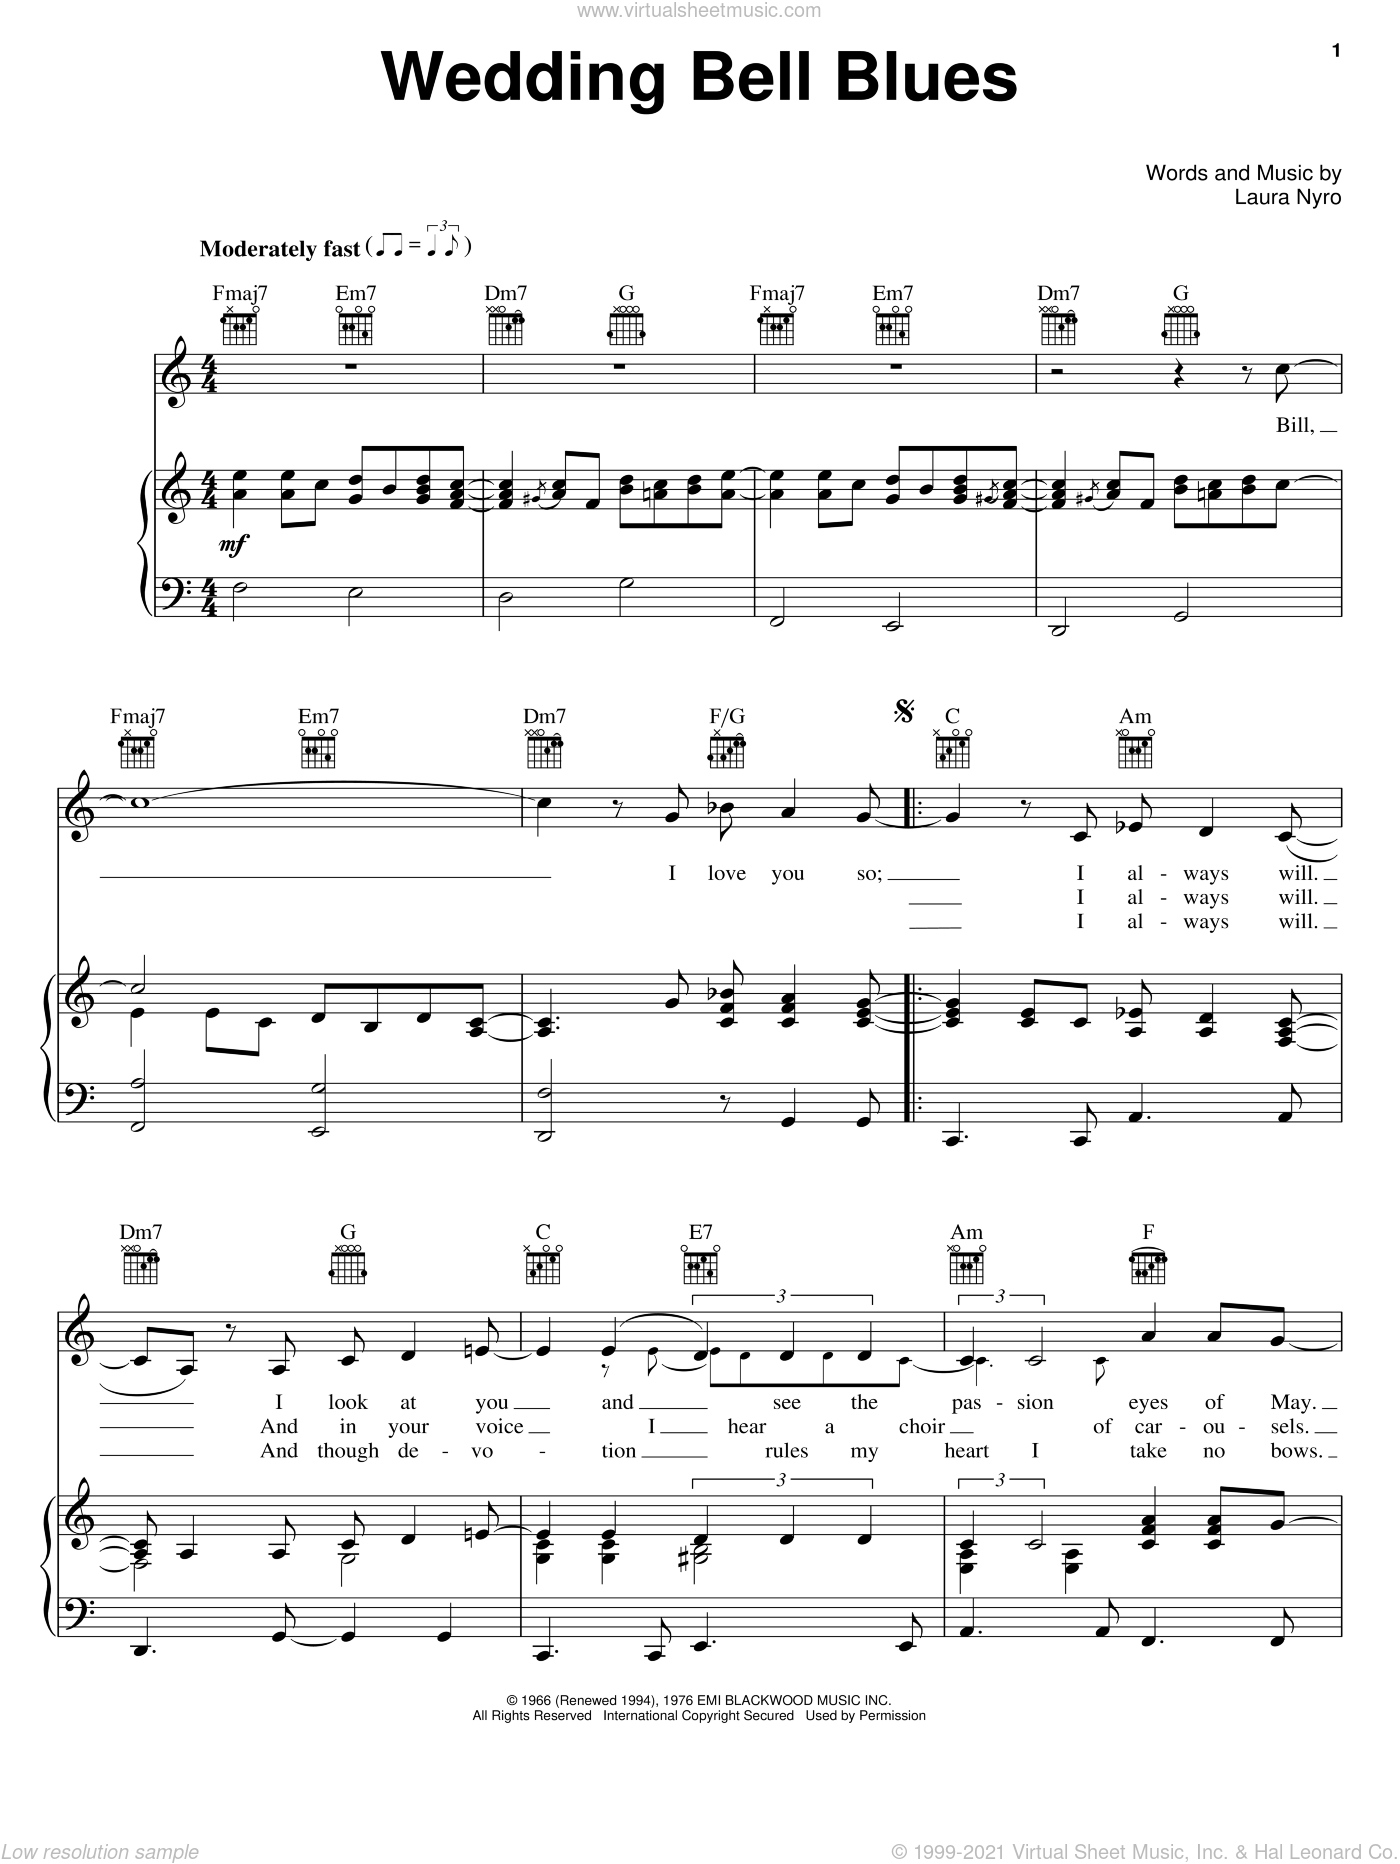 Wedding Bell Blues sheet music for voice, piano or guitar by Laura Nyro and The Fifth Dimension, intermediate skill level